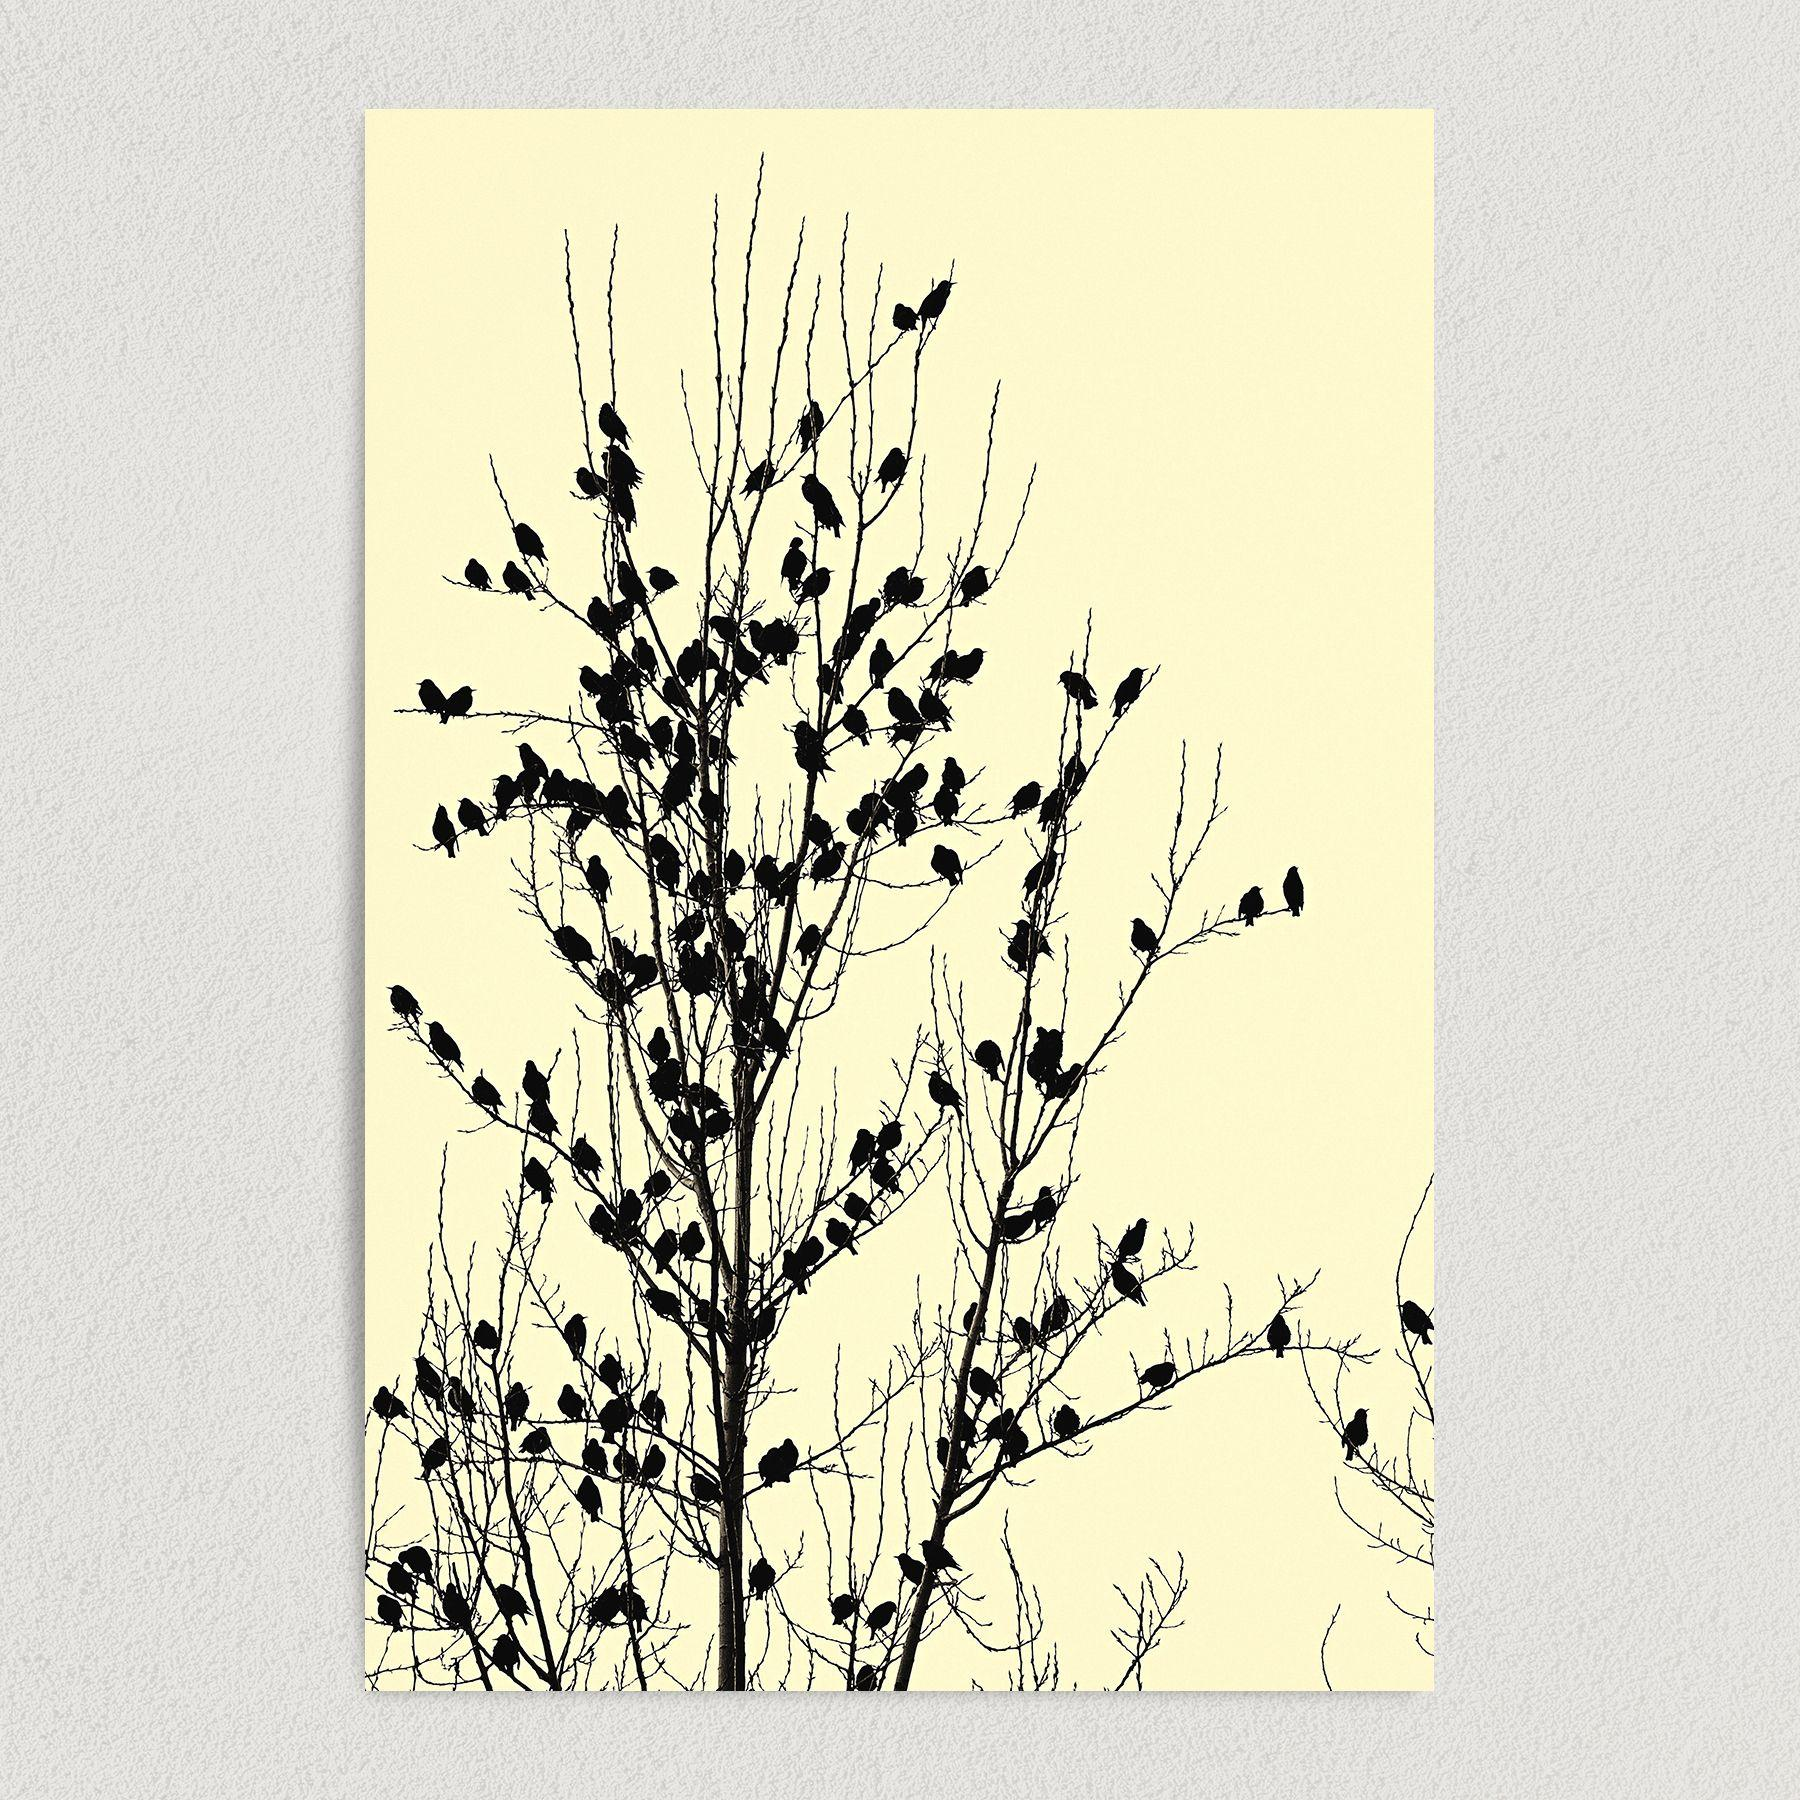 Crows Gathered On A Tree Ominous Art Print Poster N1010